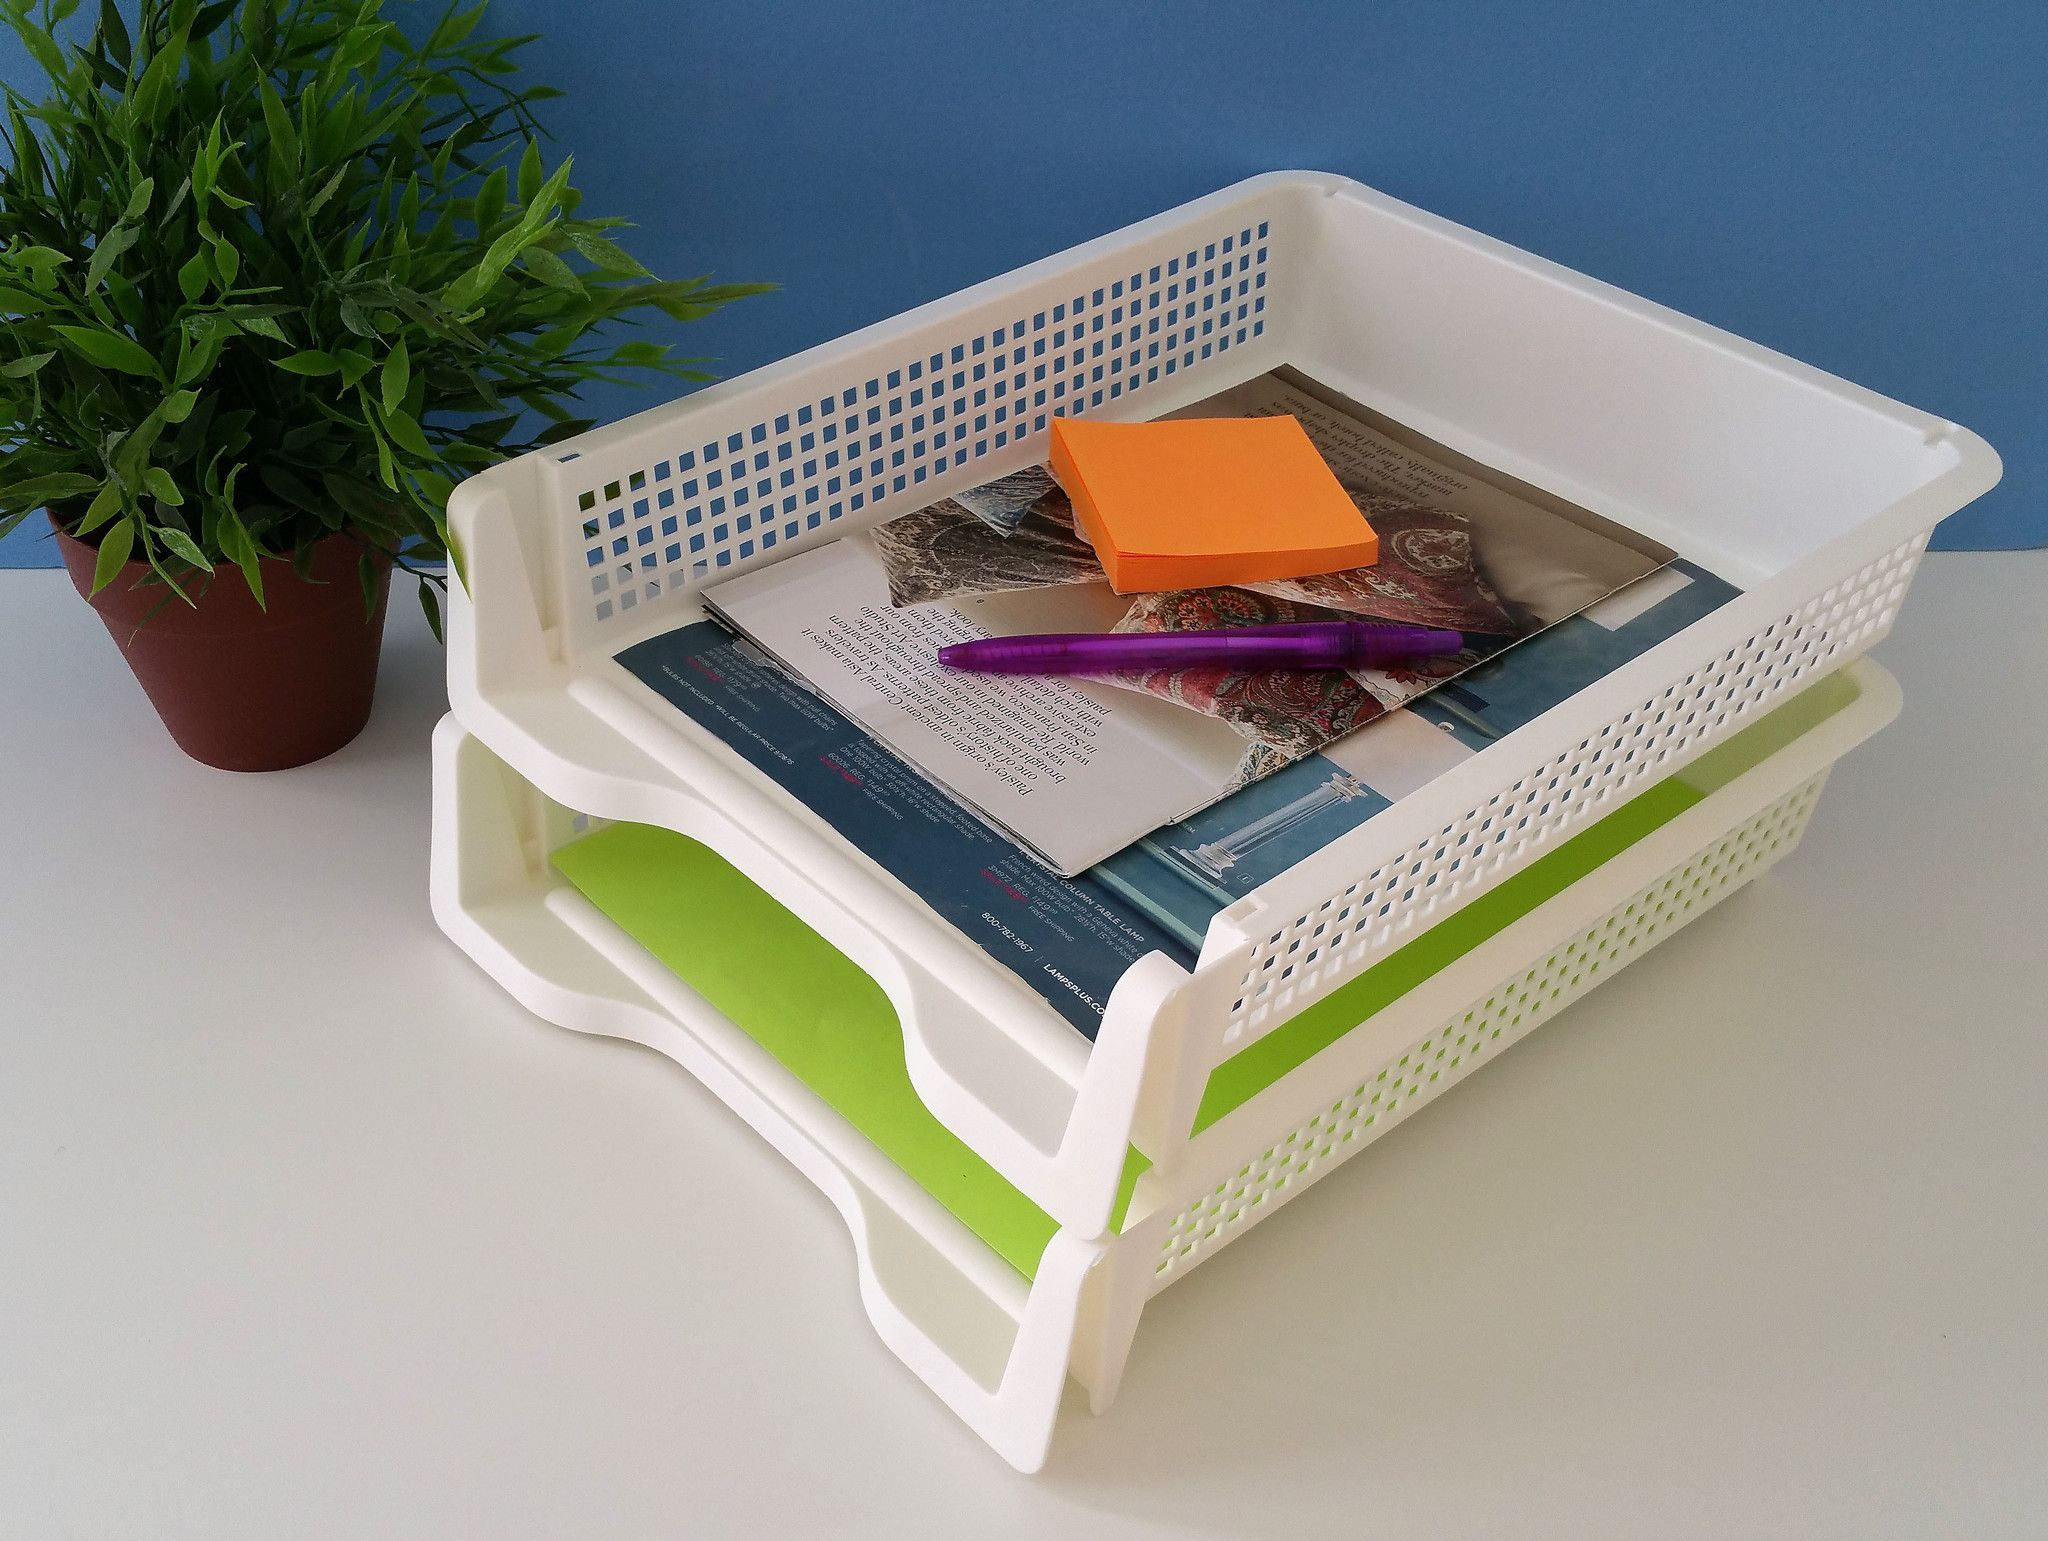 Premium Plastic Desk Organizer- Stackable A4 Paper Tray - Pack of 2